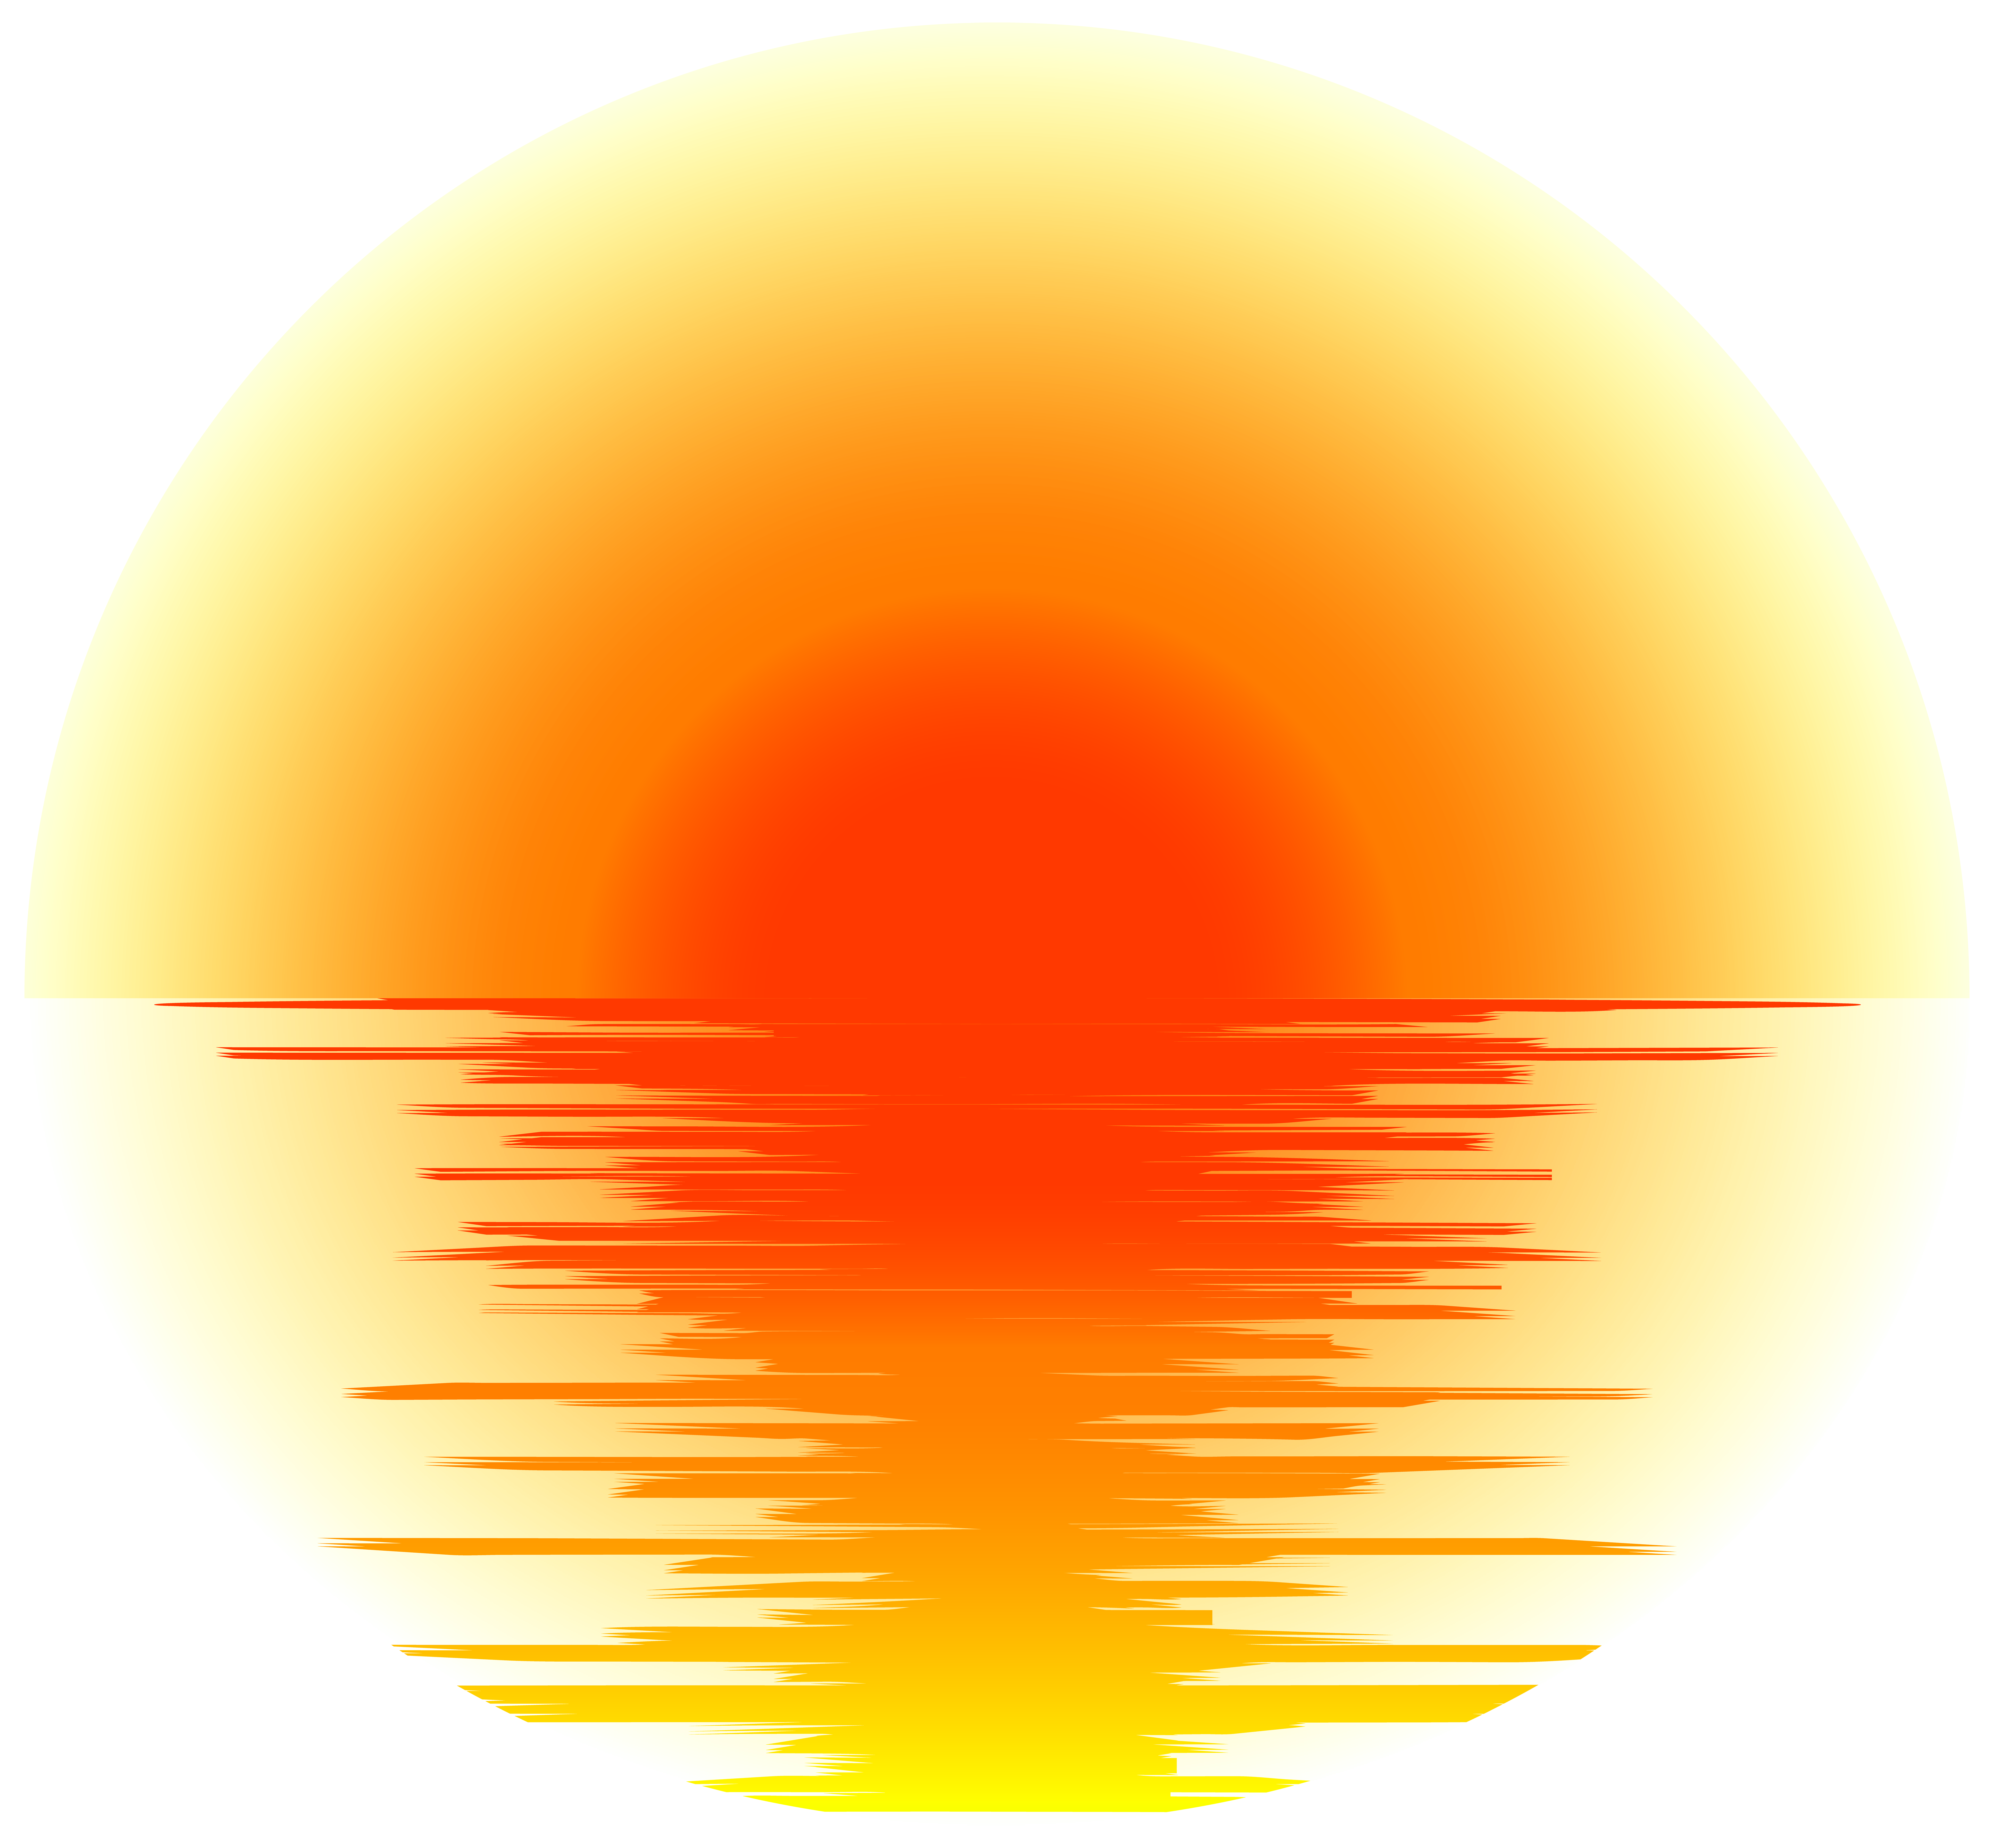 Sunset Effect PNG Transparent Clip Art.